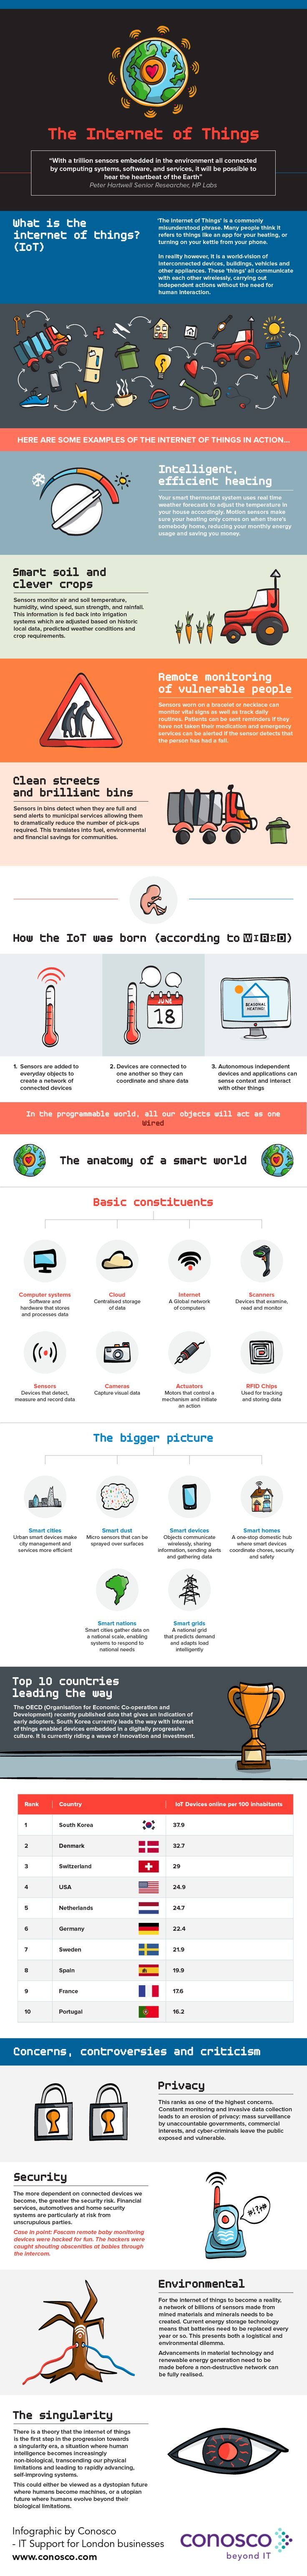 285 best it images on pinterest computer science computers and the internet of things infographic fandeluxe Images